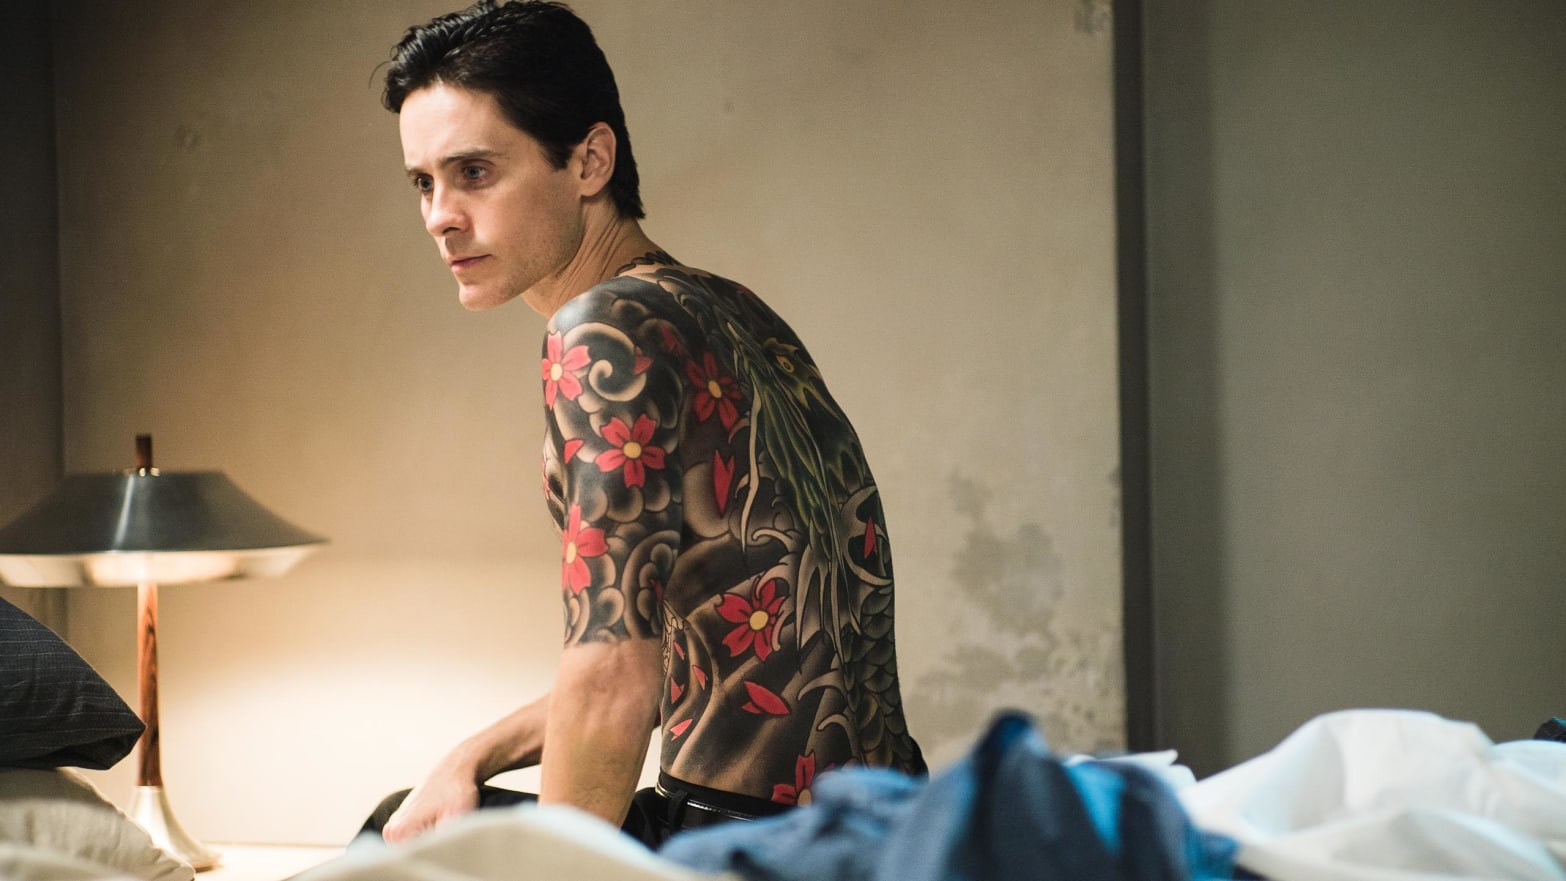 Jared Leto's Netflix Yakuza Movie Is a Culturally Insensitive Disaster